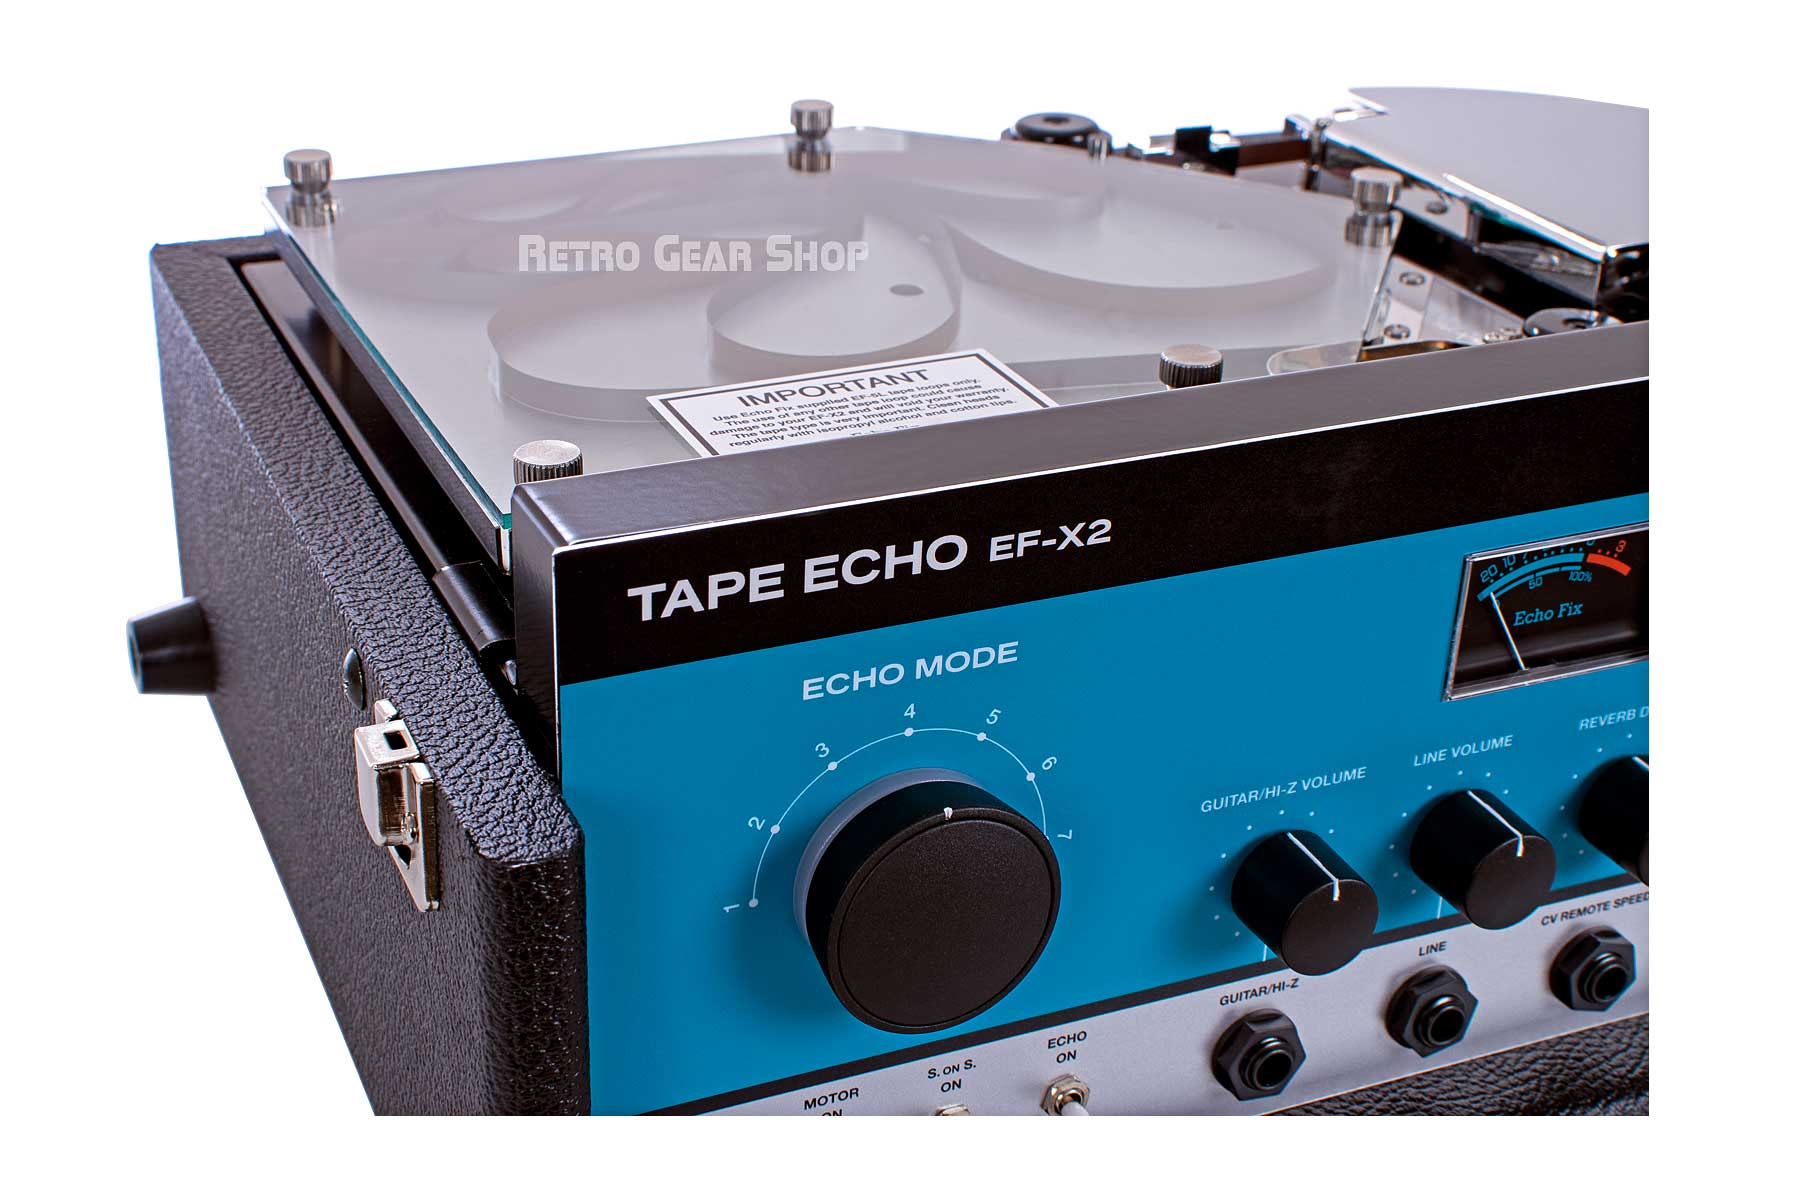 Echo Fix EF-X2 Tape Delay Echo Spring DSP Reverb Effect Replica RE-201 Reissue